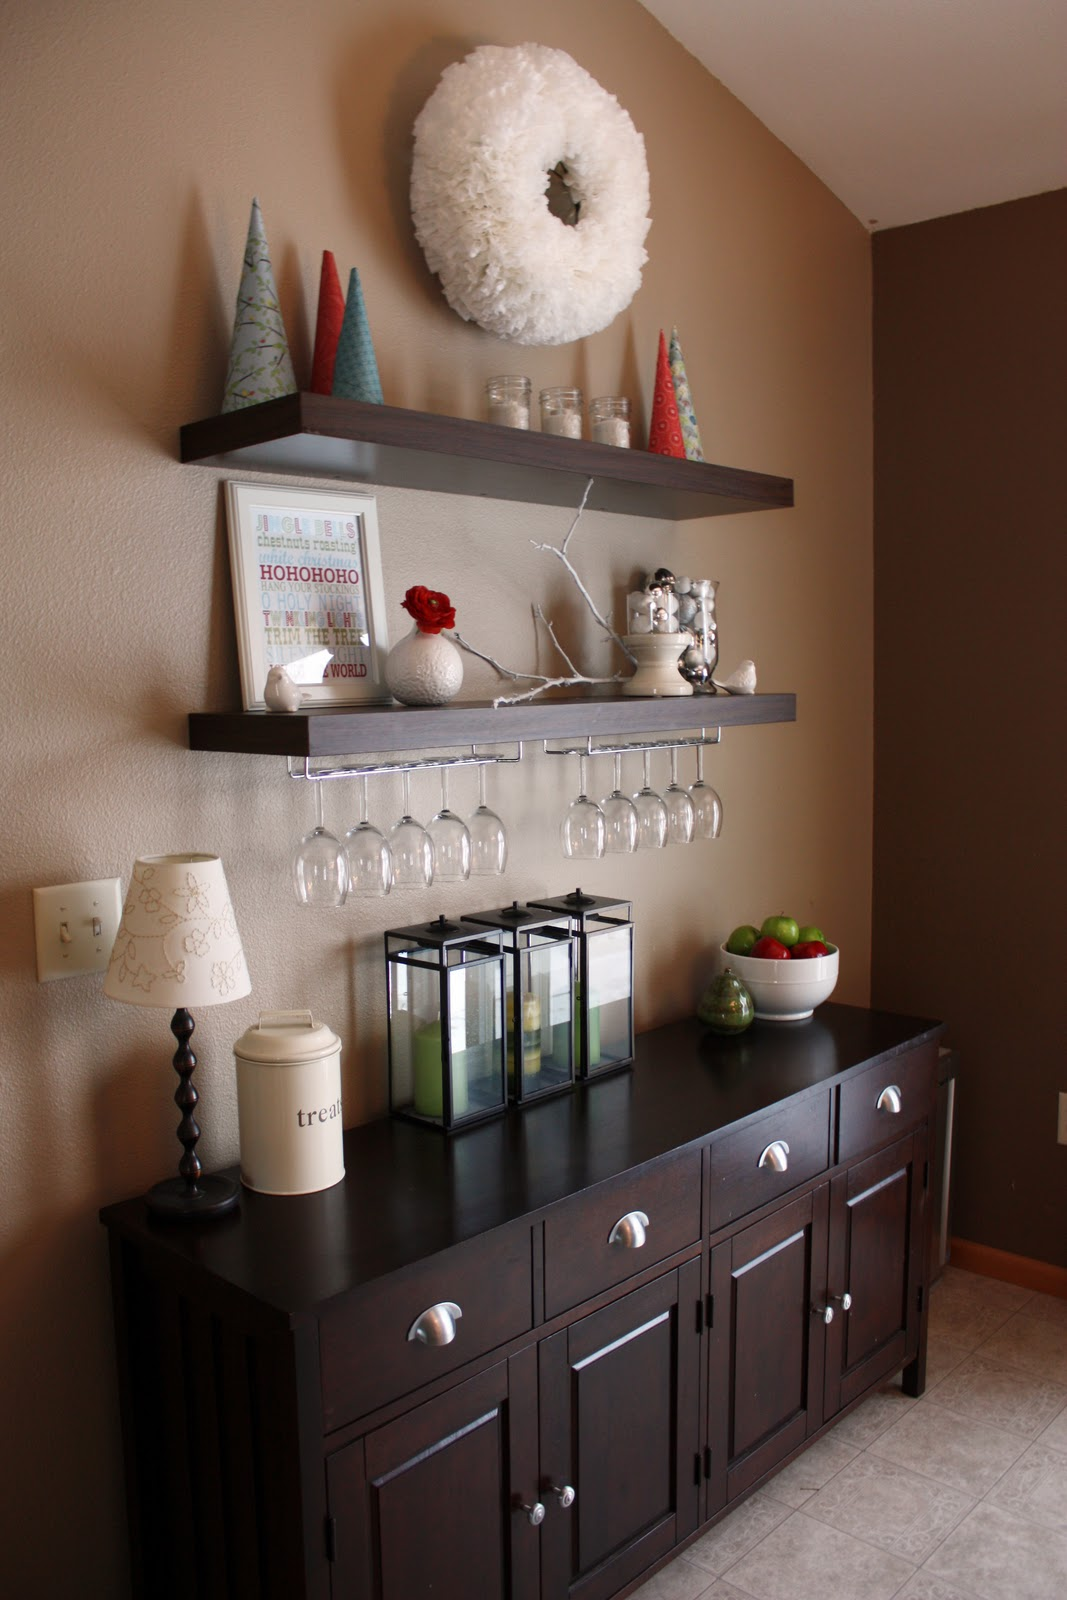 Dining Room Shelf Ideas Iheart Organizing Wreathdiculously Easy And Cheapo